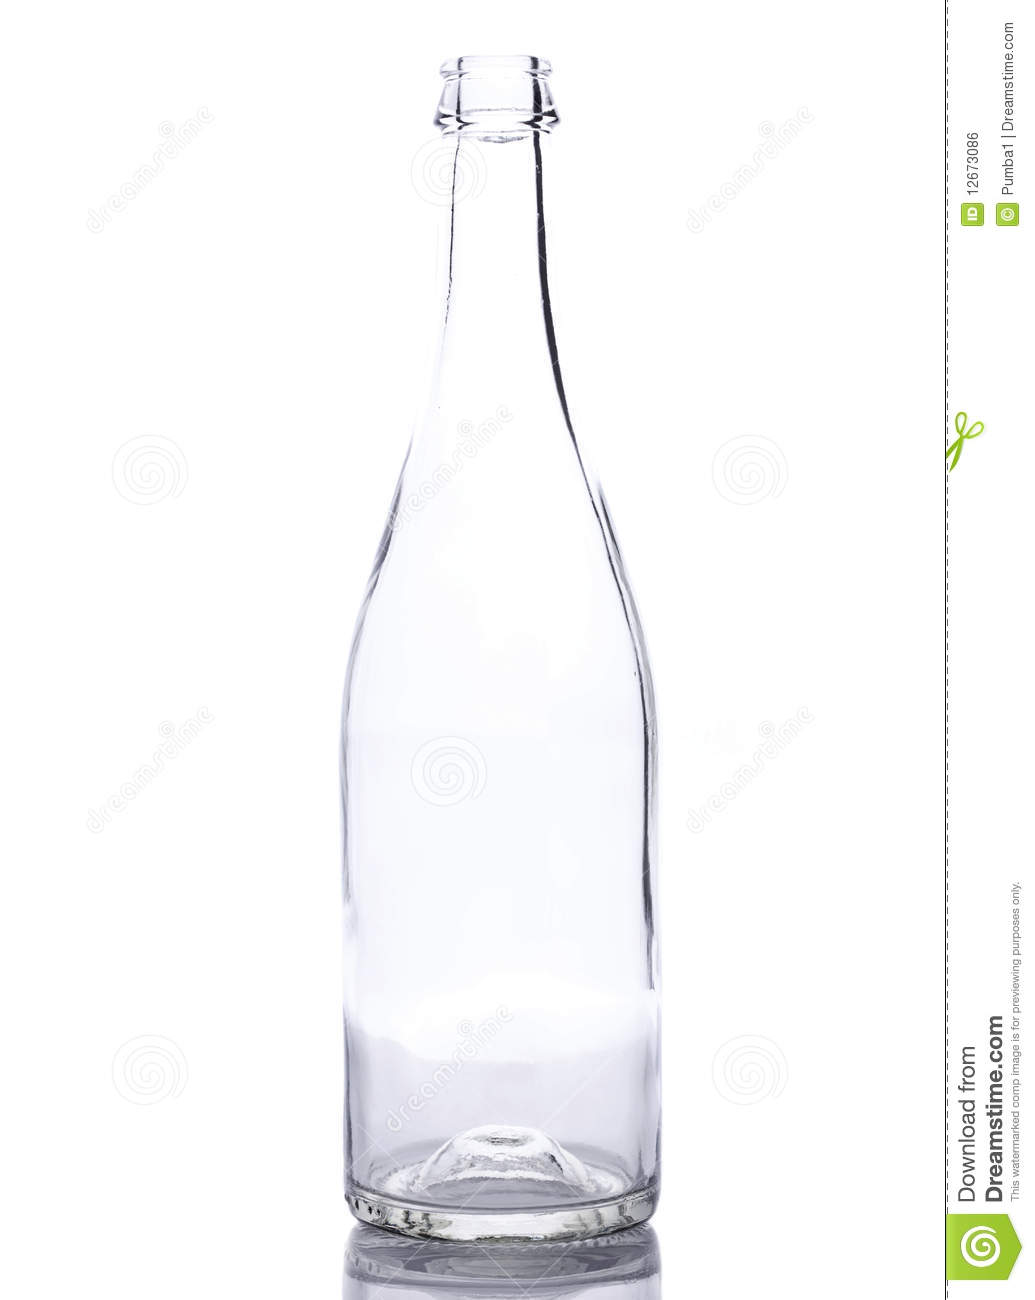 Empty Bottle Royalty Free Stock Image - Image: 12673086